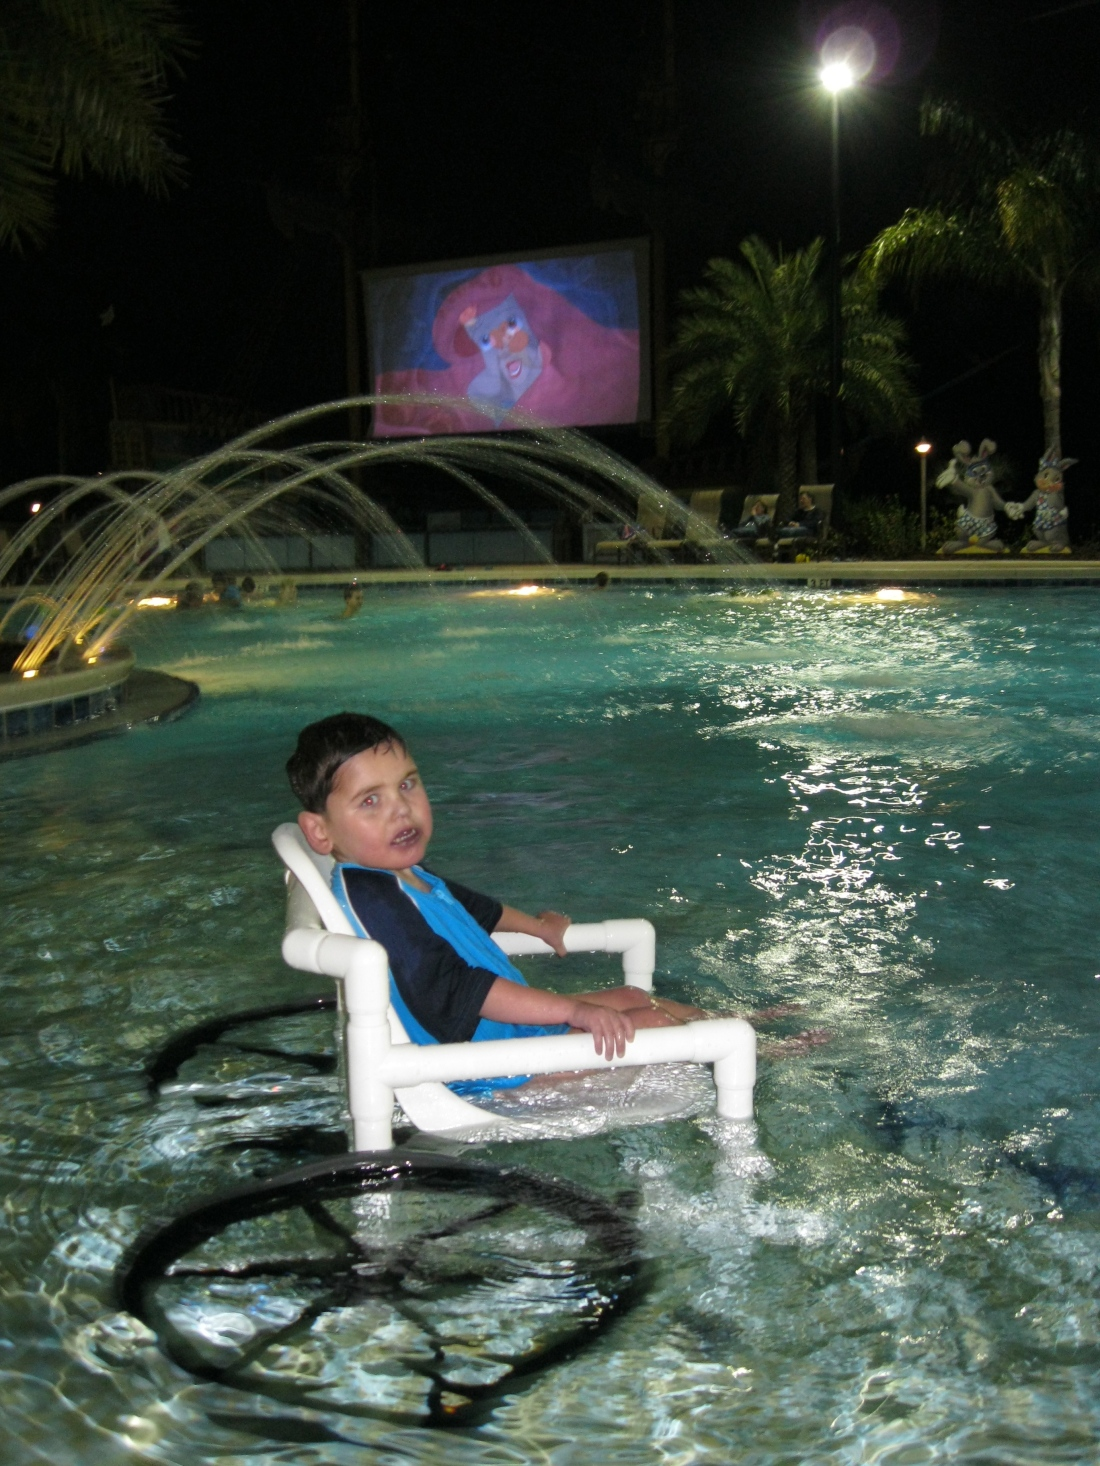 ...and a movie!  :)  (Rudy rocking the water wheelchair)